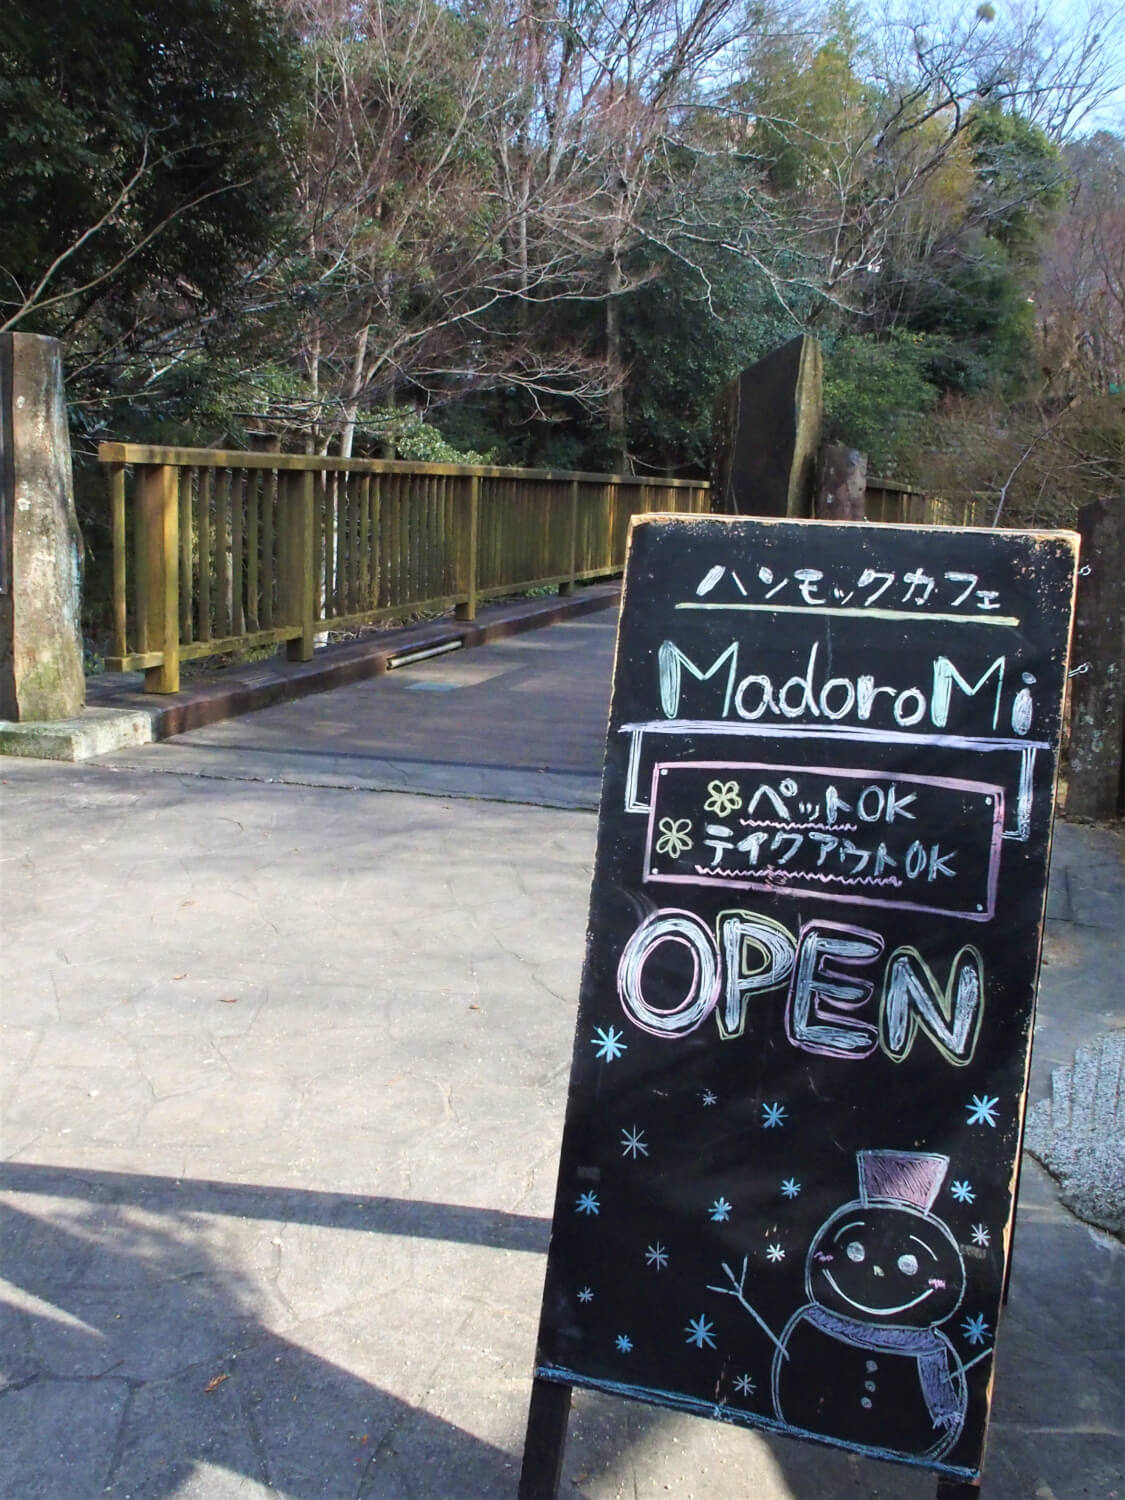 A sign board found outside the Outdoor Cafe MadoroMi